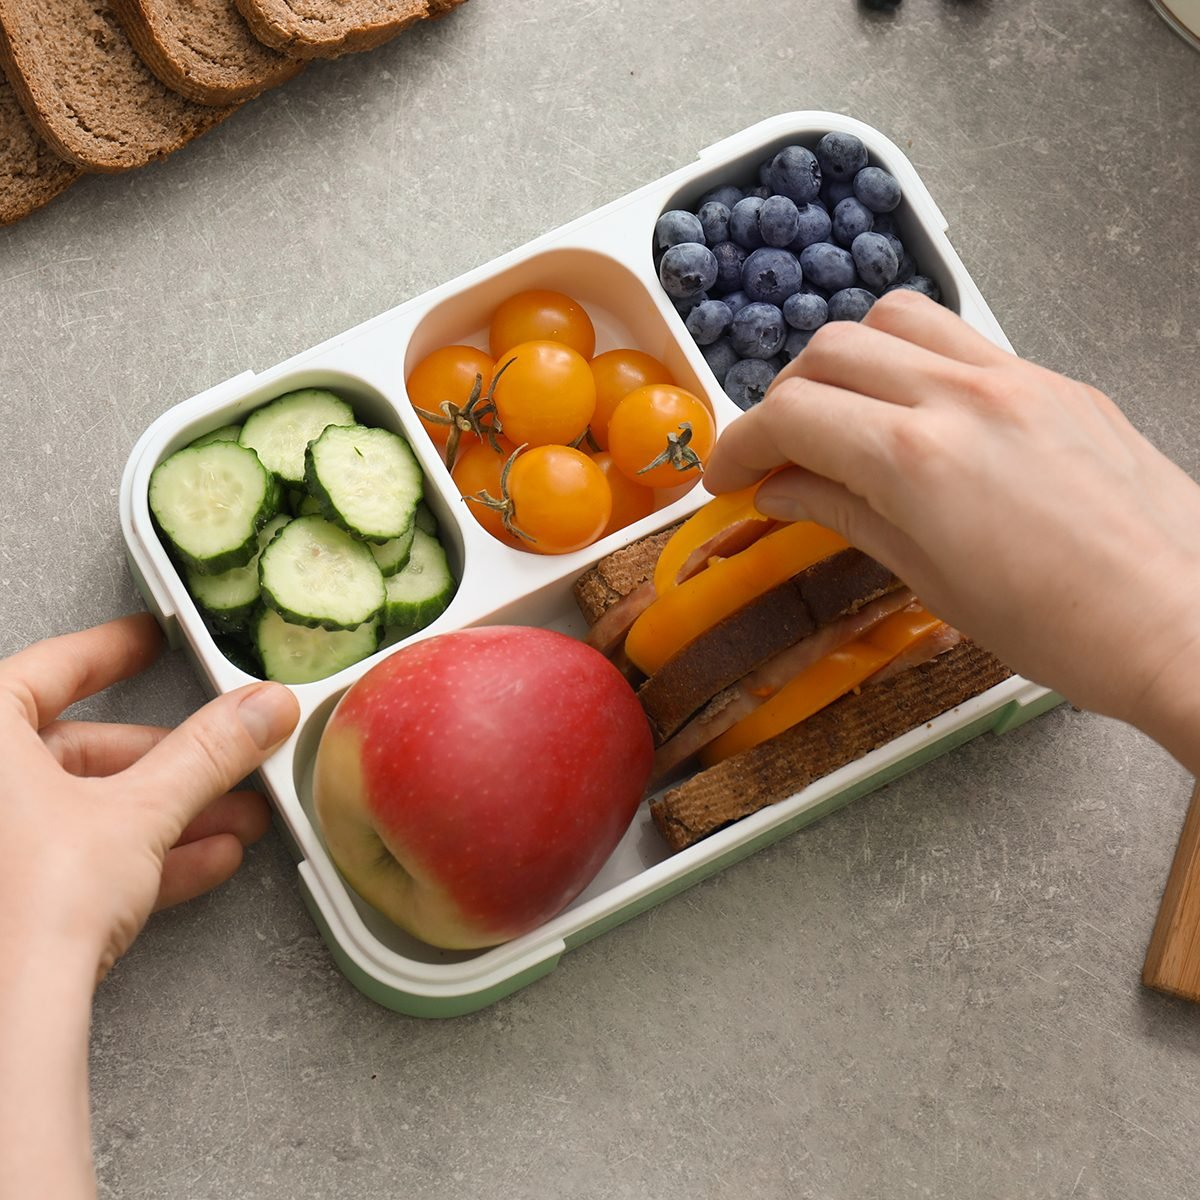 Easy School Lunch Ideas Mother putting food for schoolchild in lunch box on table